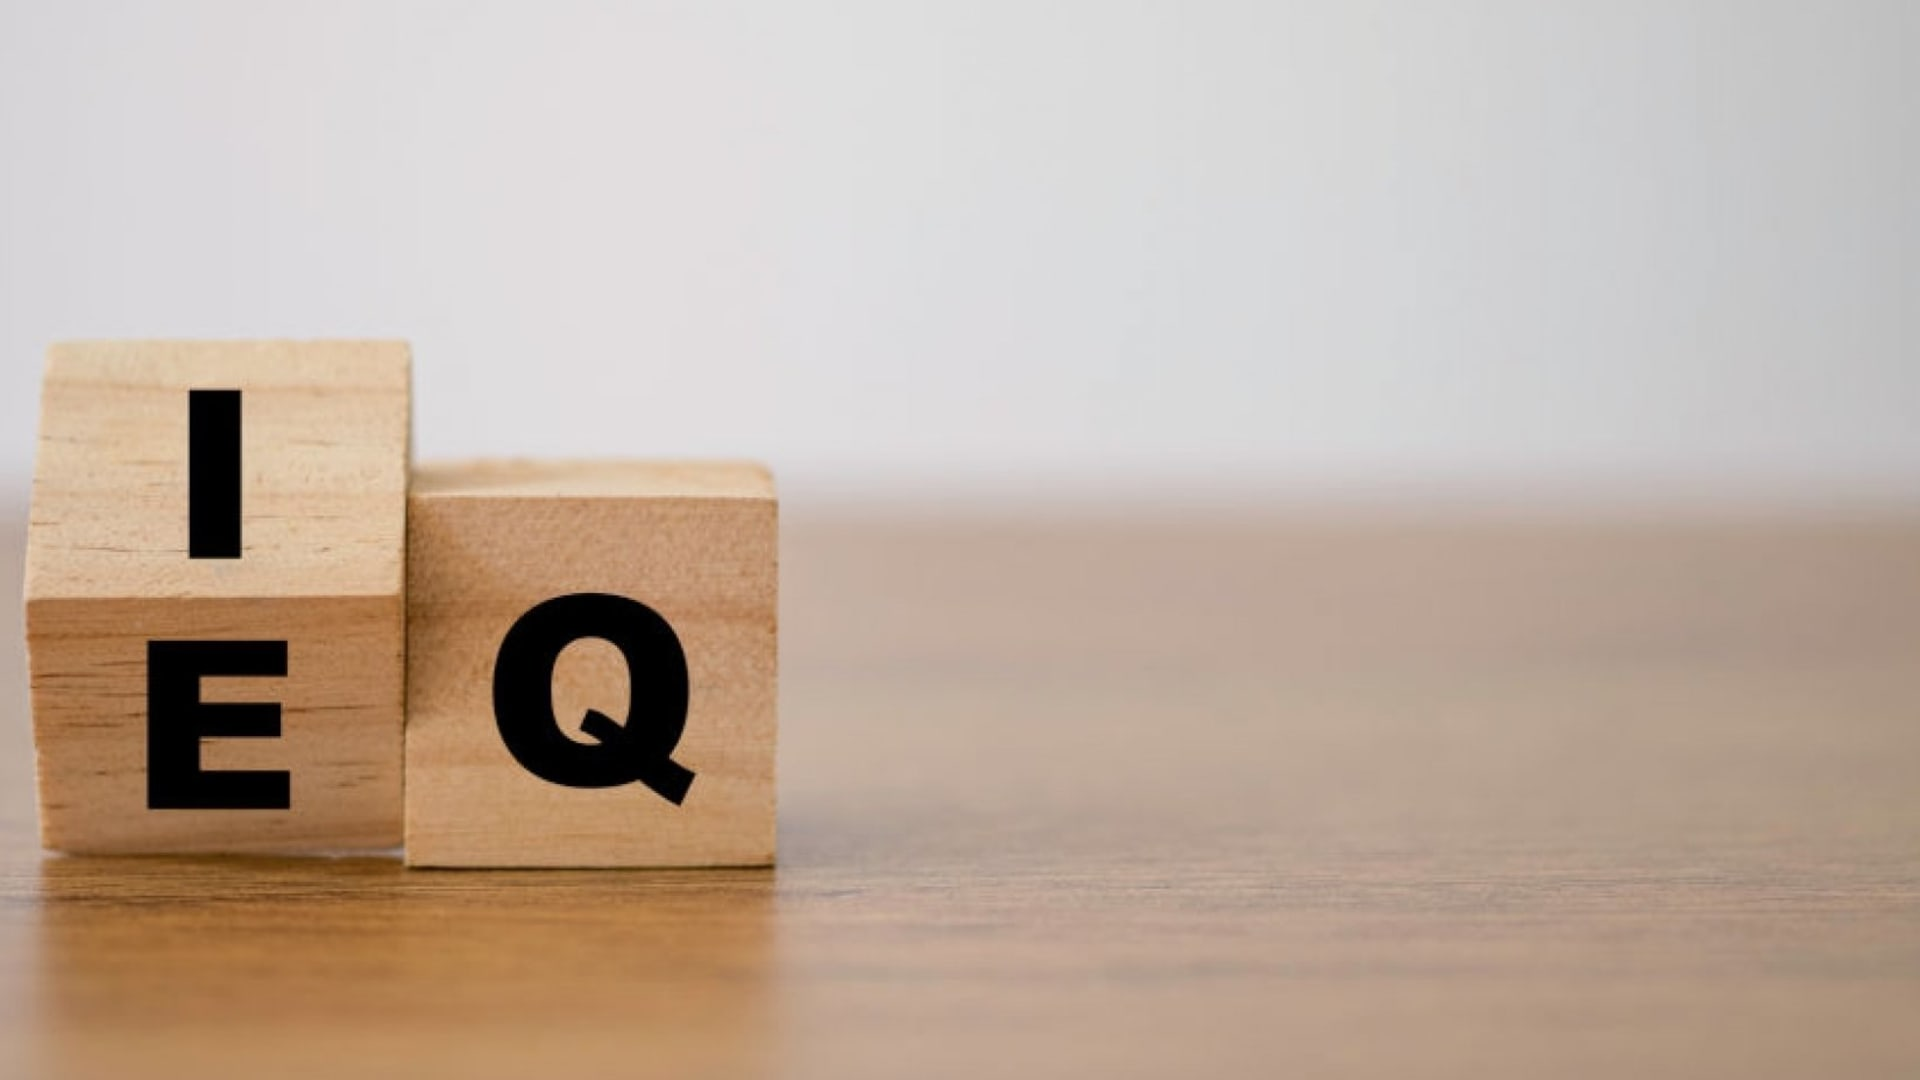 What's More Important, EQ or IQ? It's More Complex Than You Think